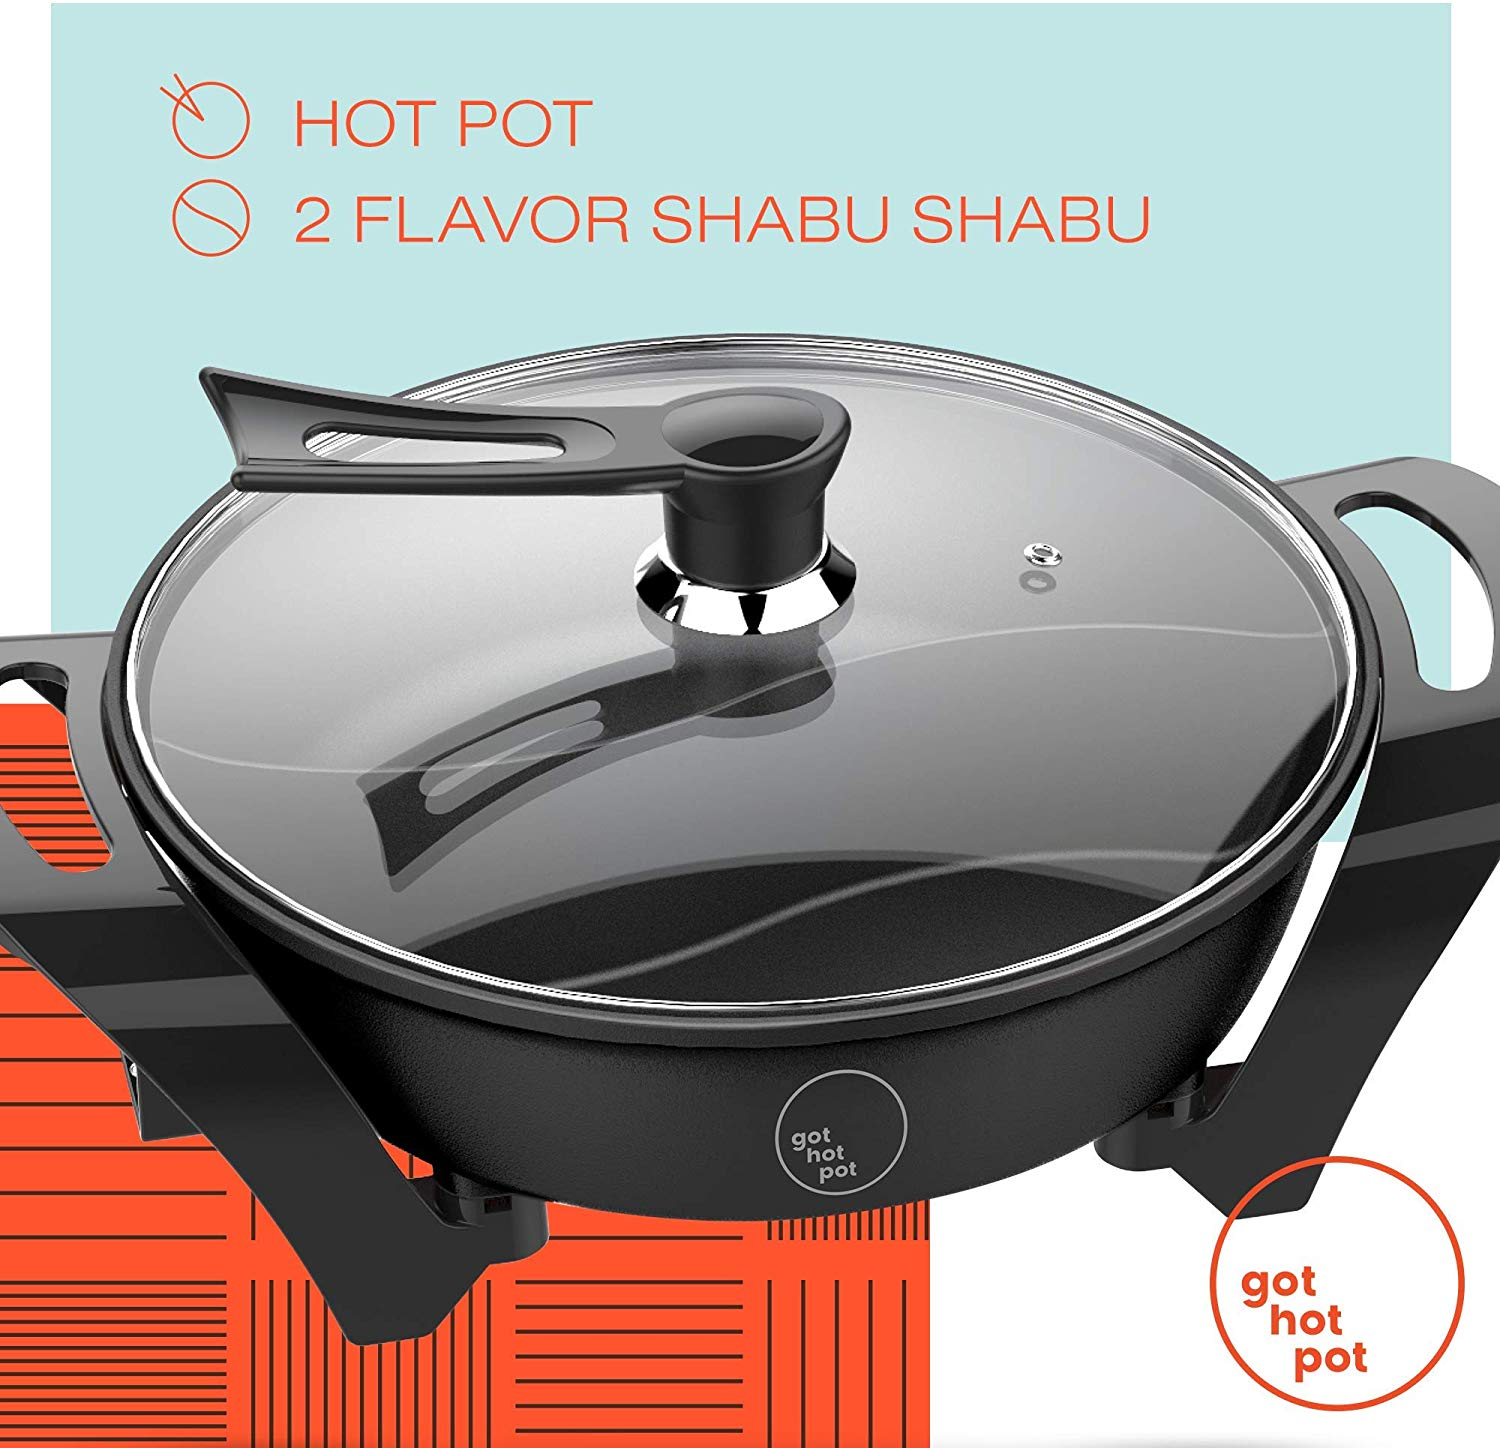 10.GOT HOT POT Electric Indoor Shabu Shabu Hot Pot with Internal Divider for 2 Flavor Experience Hot Pot Cooker Non Stick Surface with Heat Control Unit